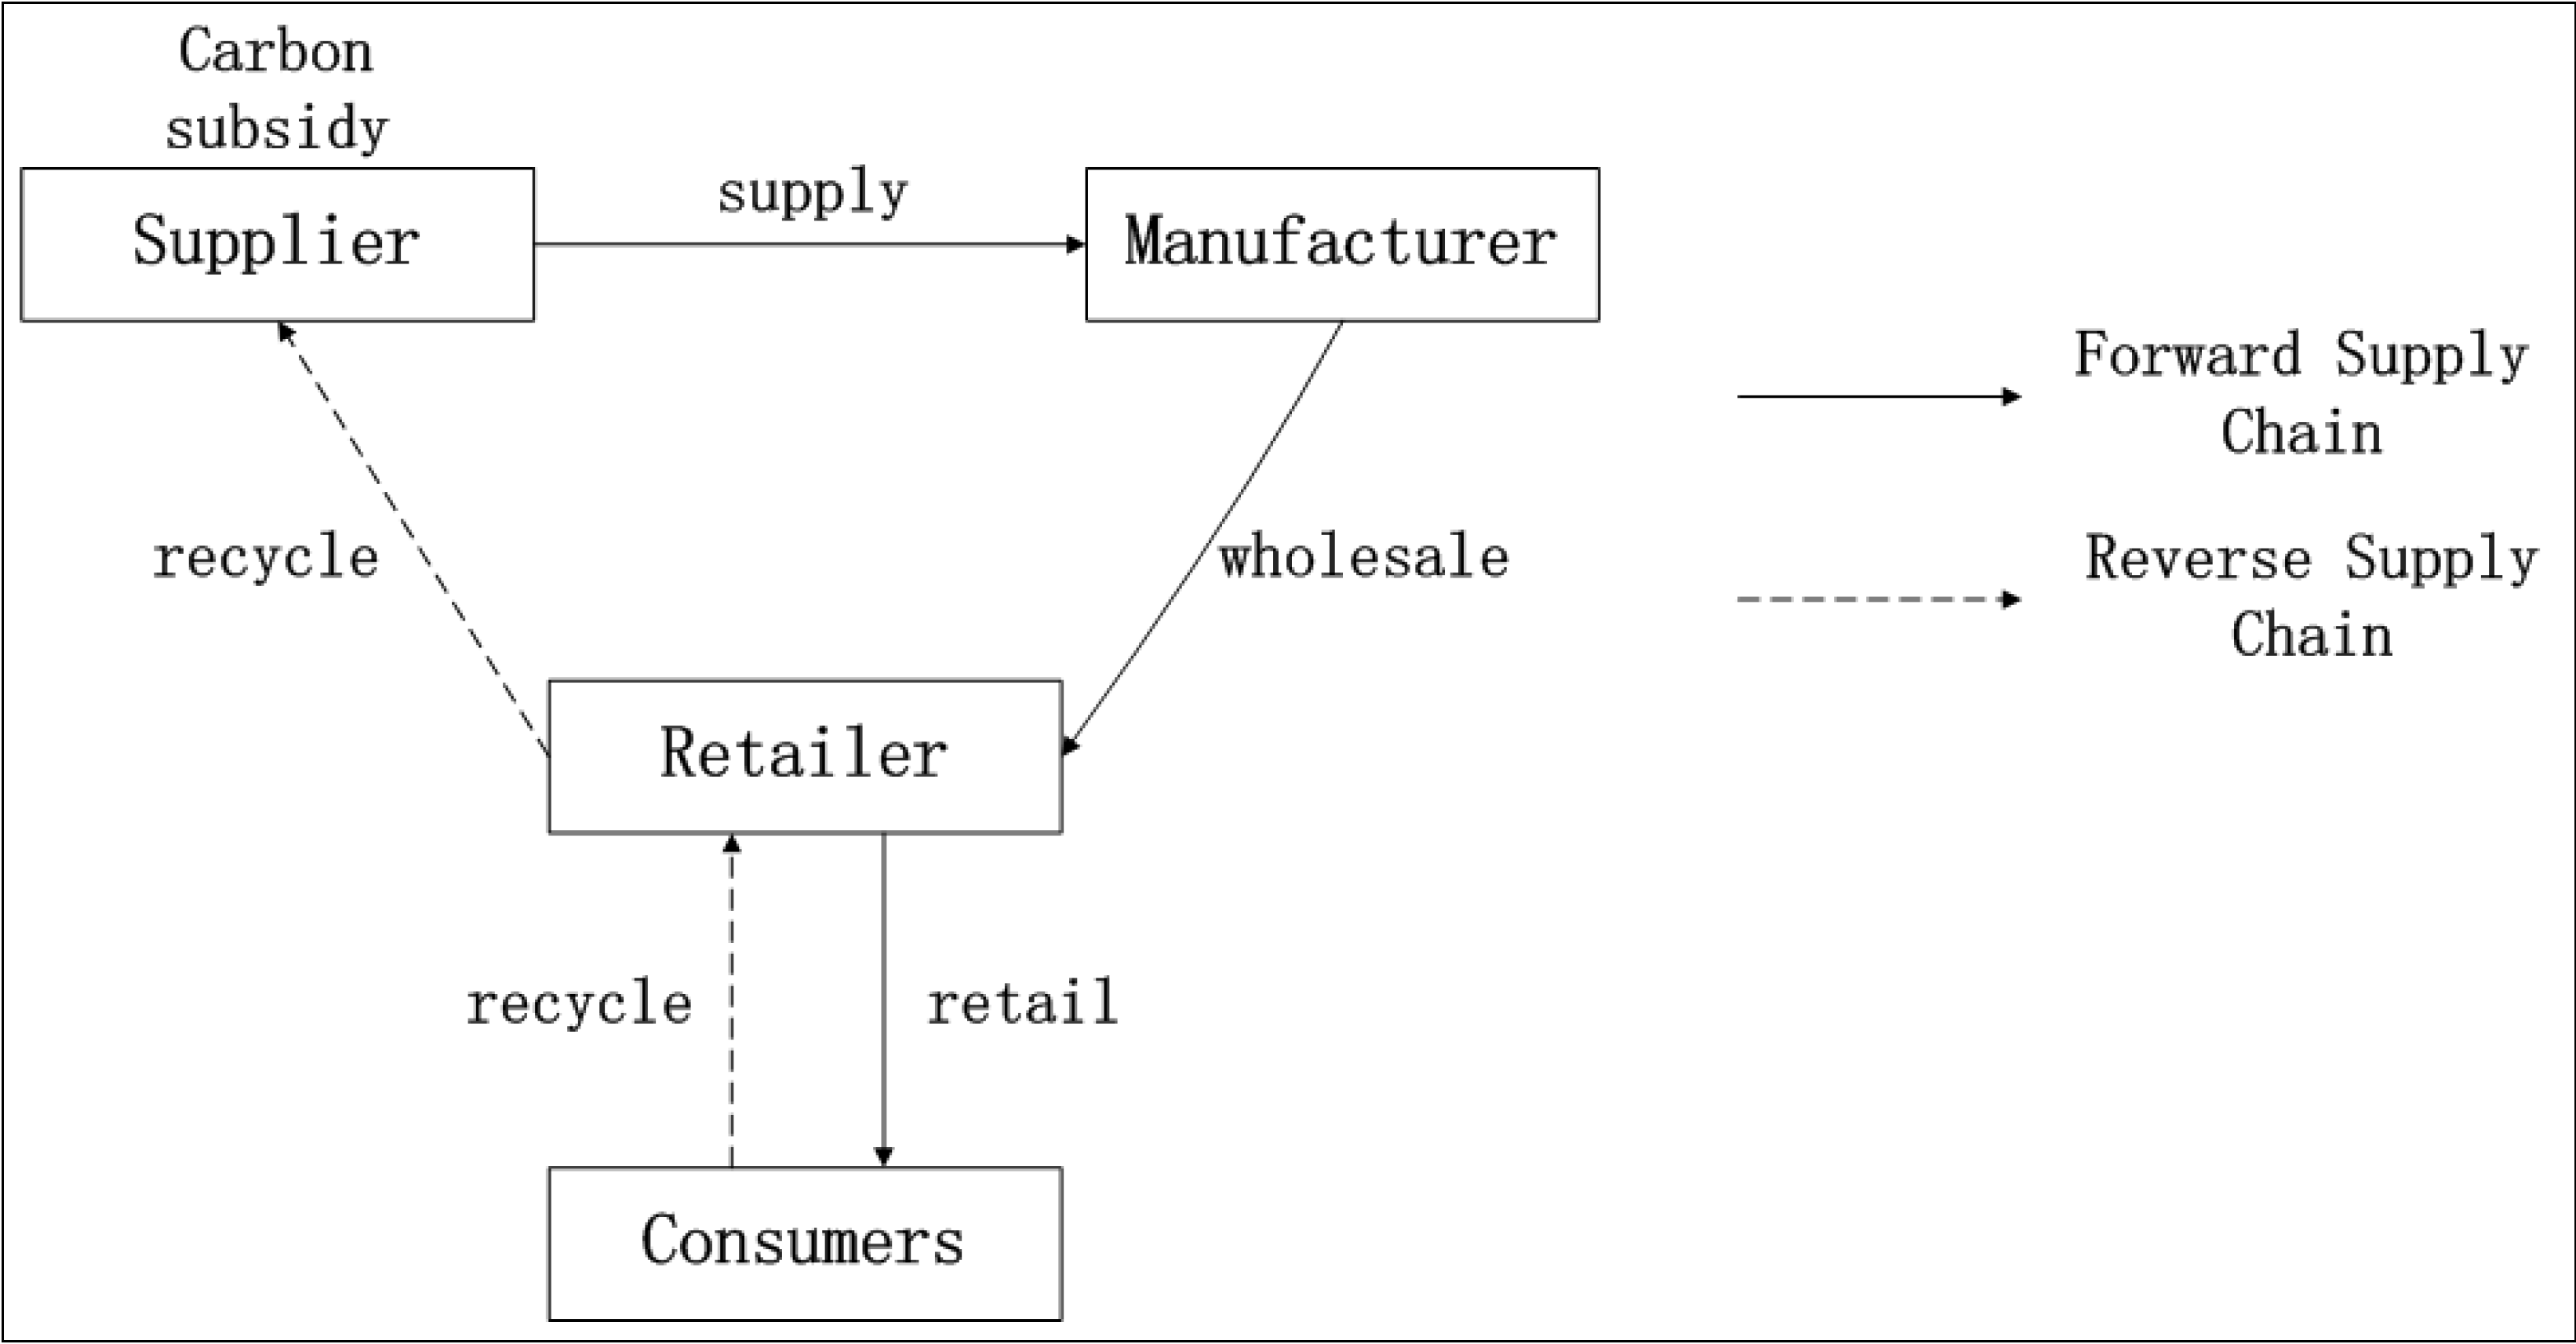 Reverse supply chains issues and analysis array sustainability free full text the carbon subsidy analysis in rh fandeluxe Images